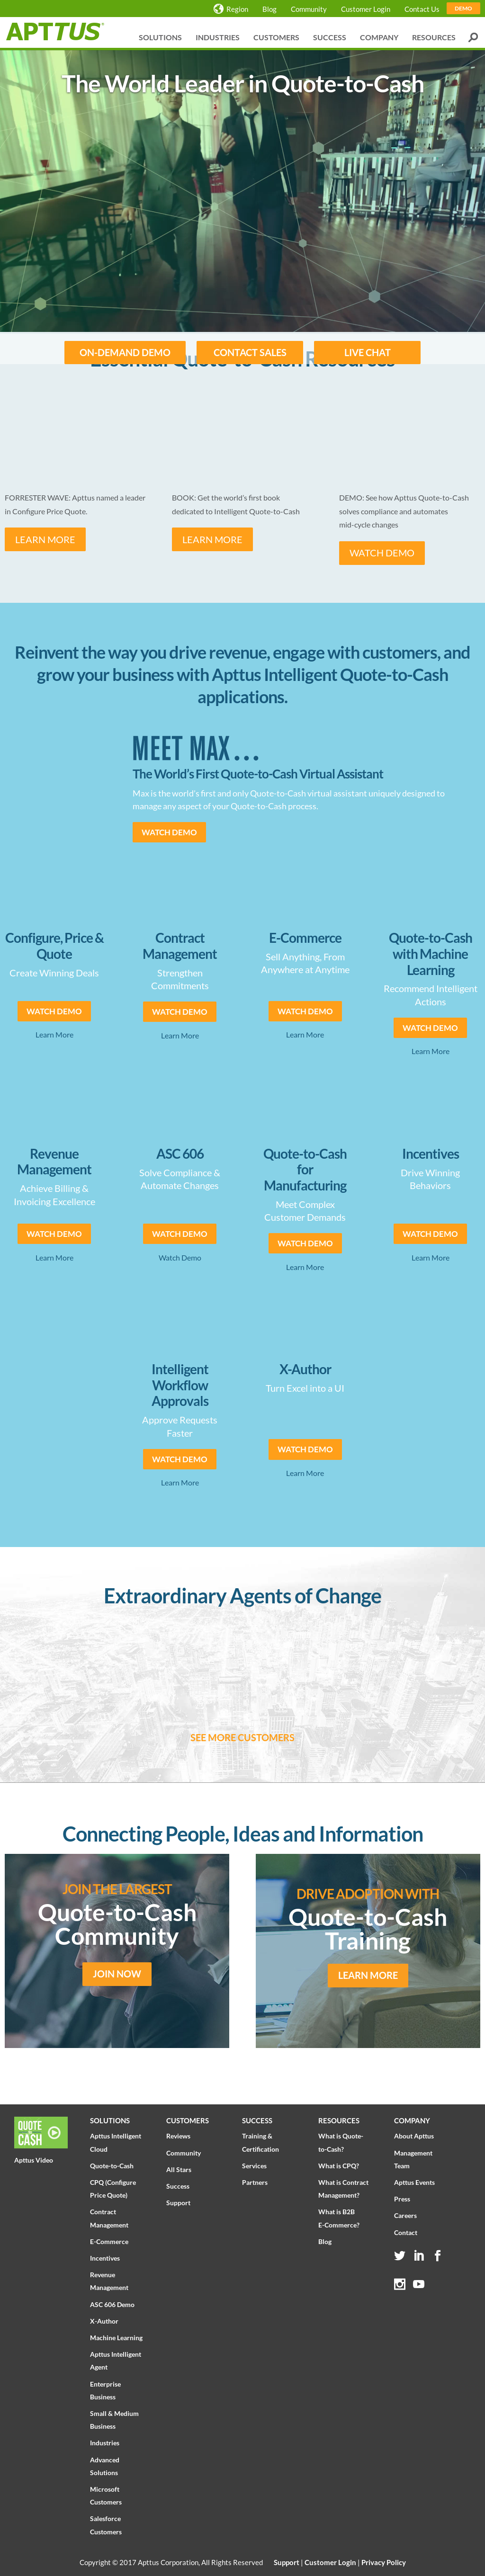 Apttus Competitors, Revenue and Employees - Owler Company